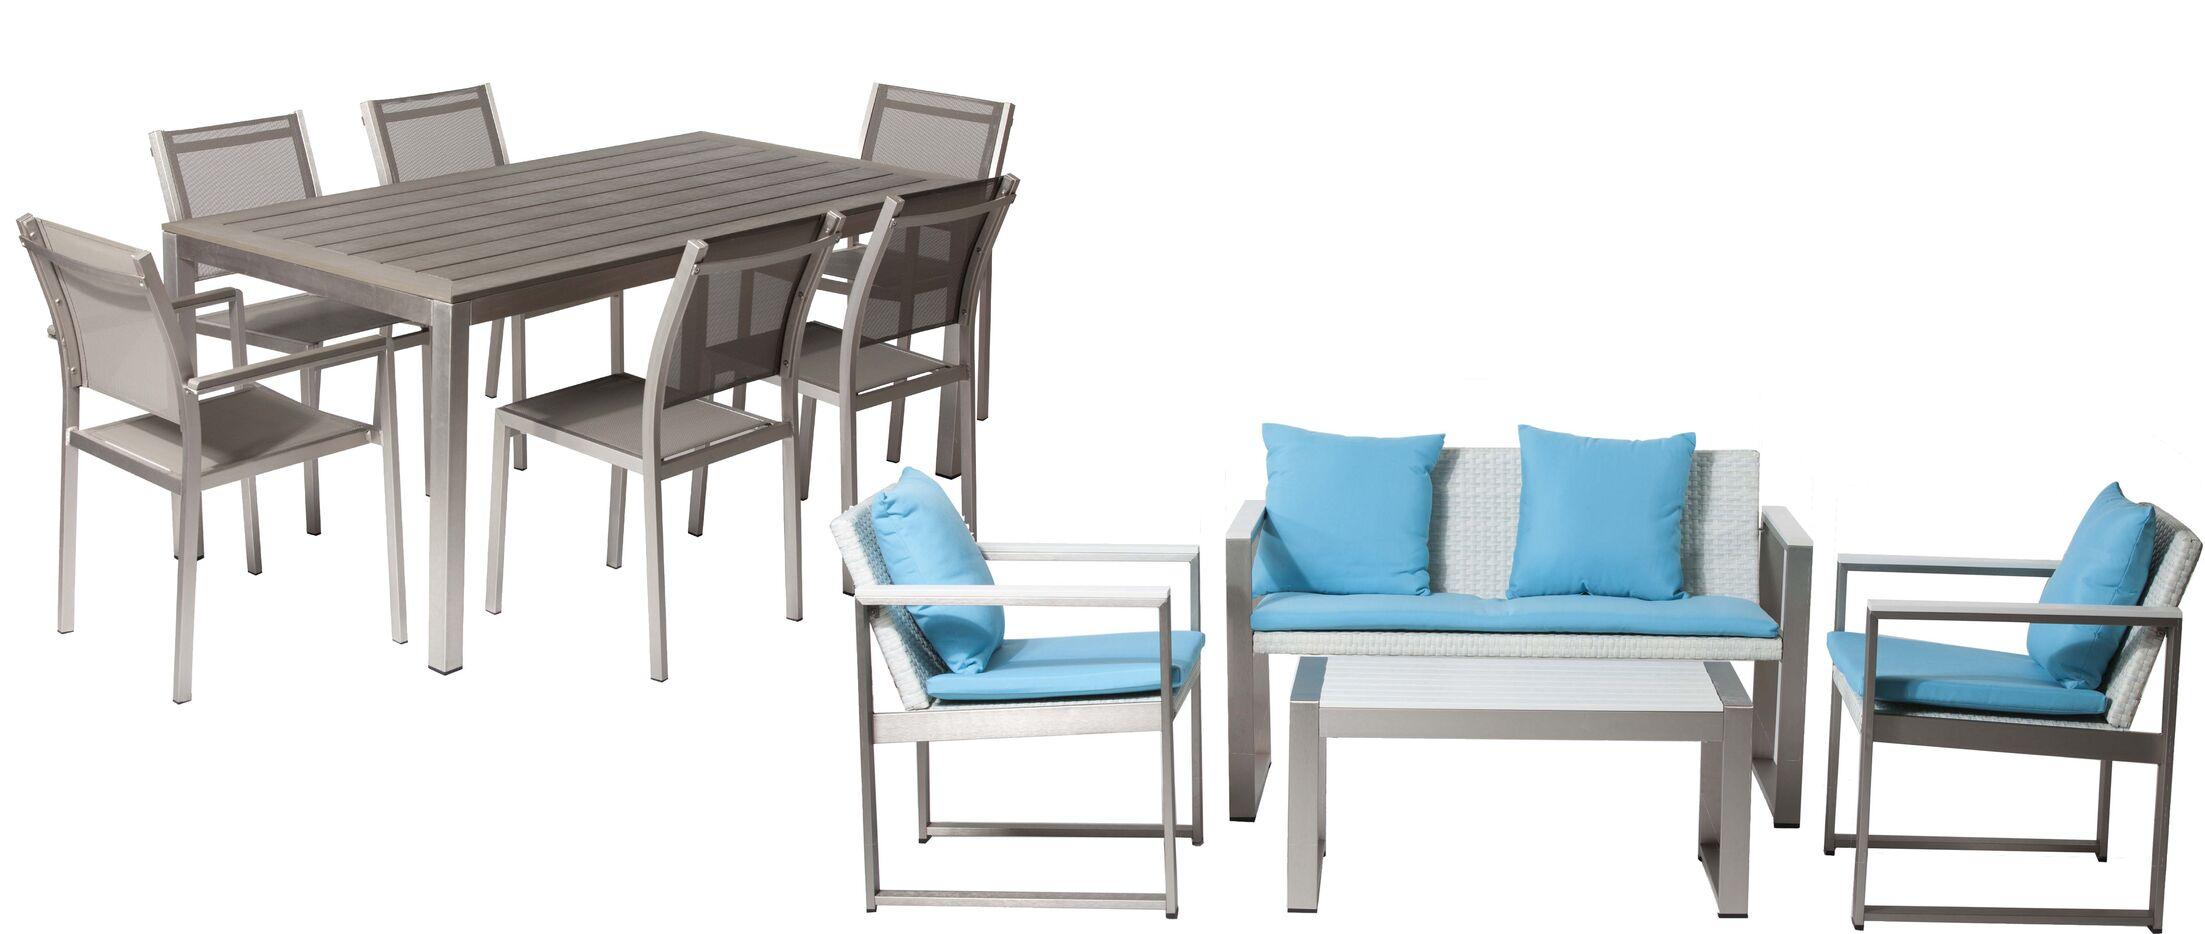 Hampshire 11 Piece Conversation Set with Cushions Frame Color: Gray/White